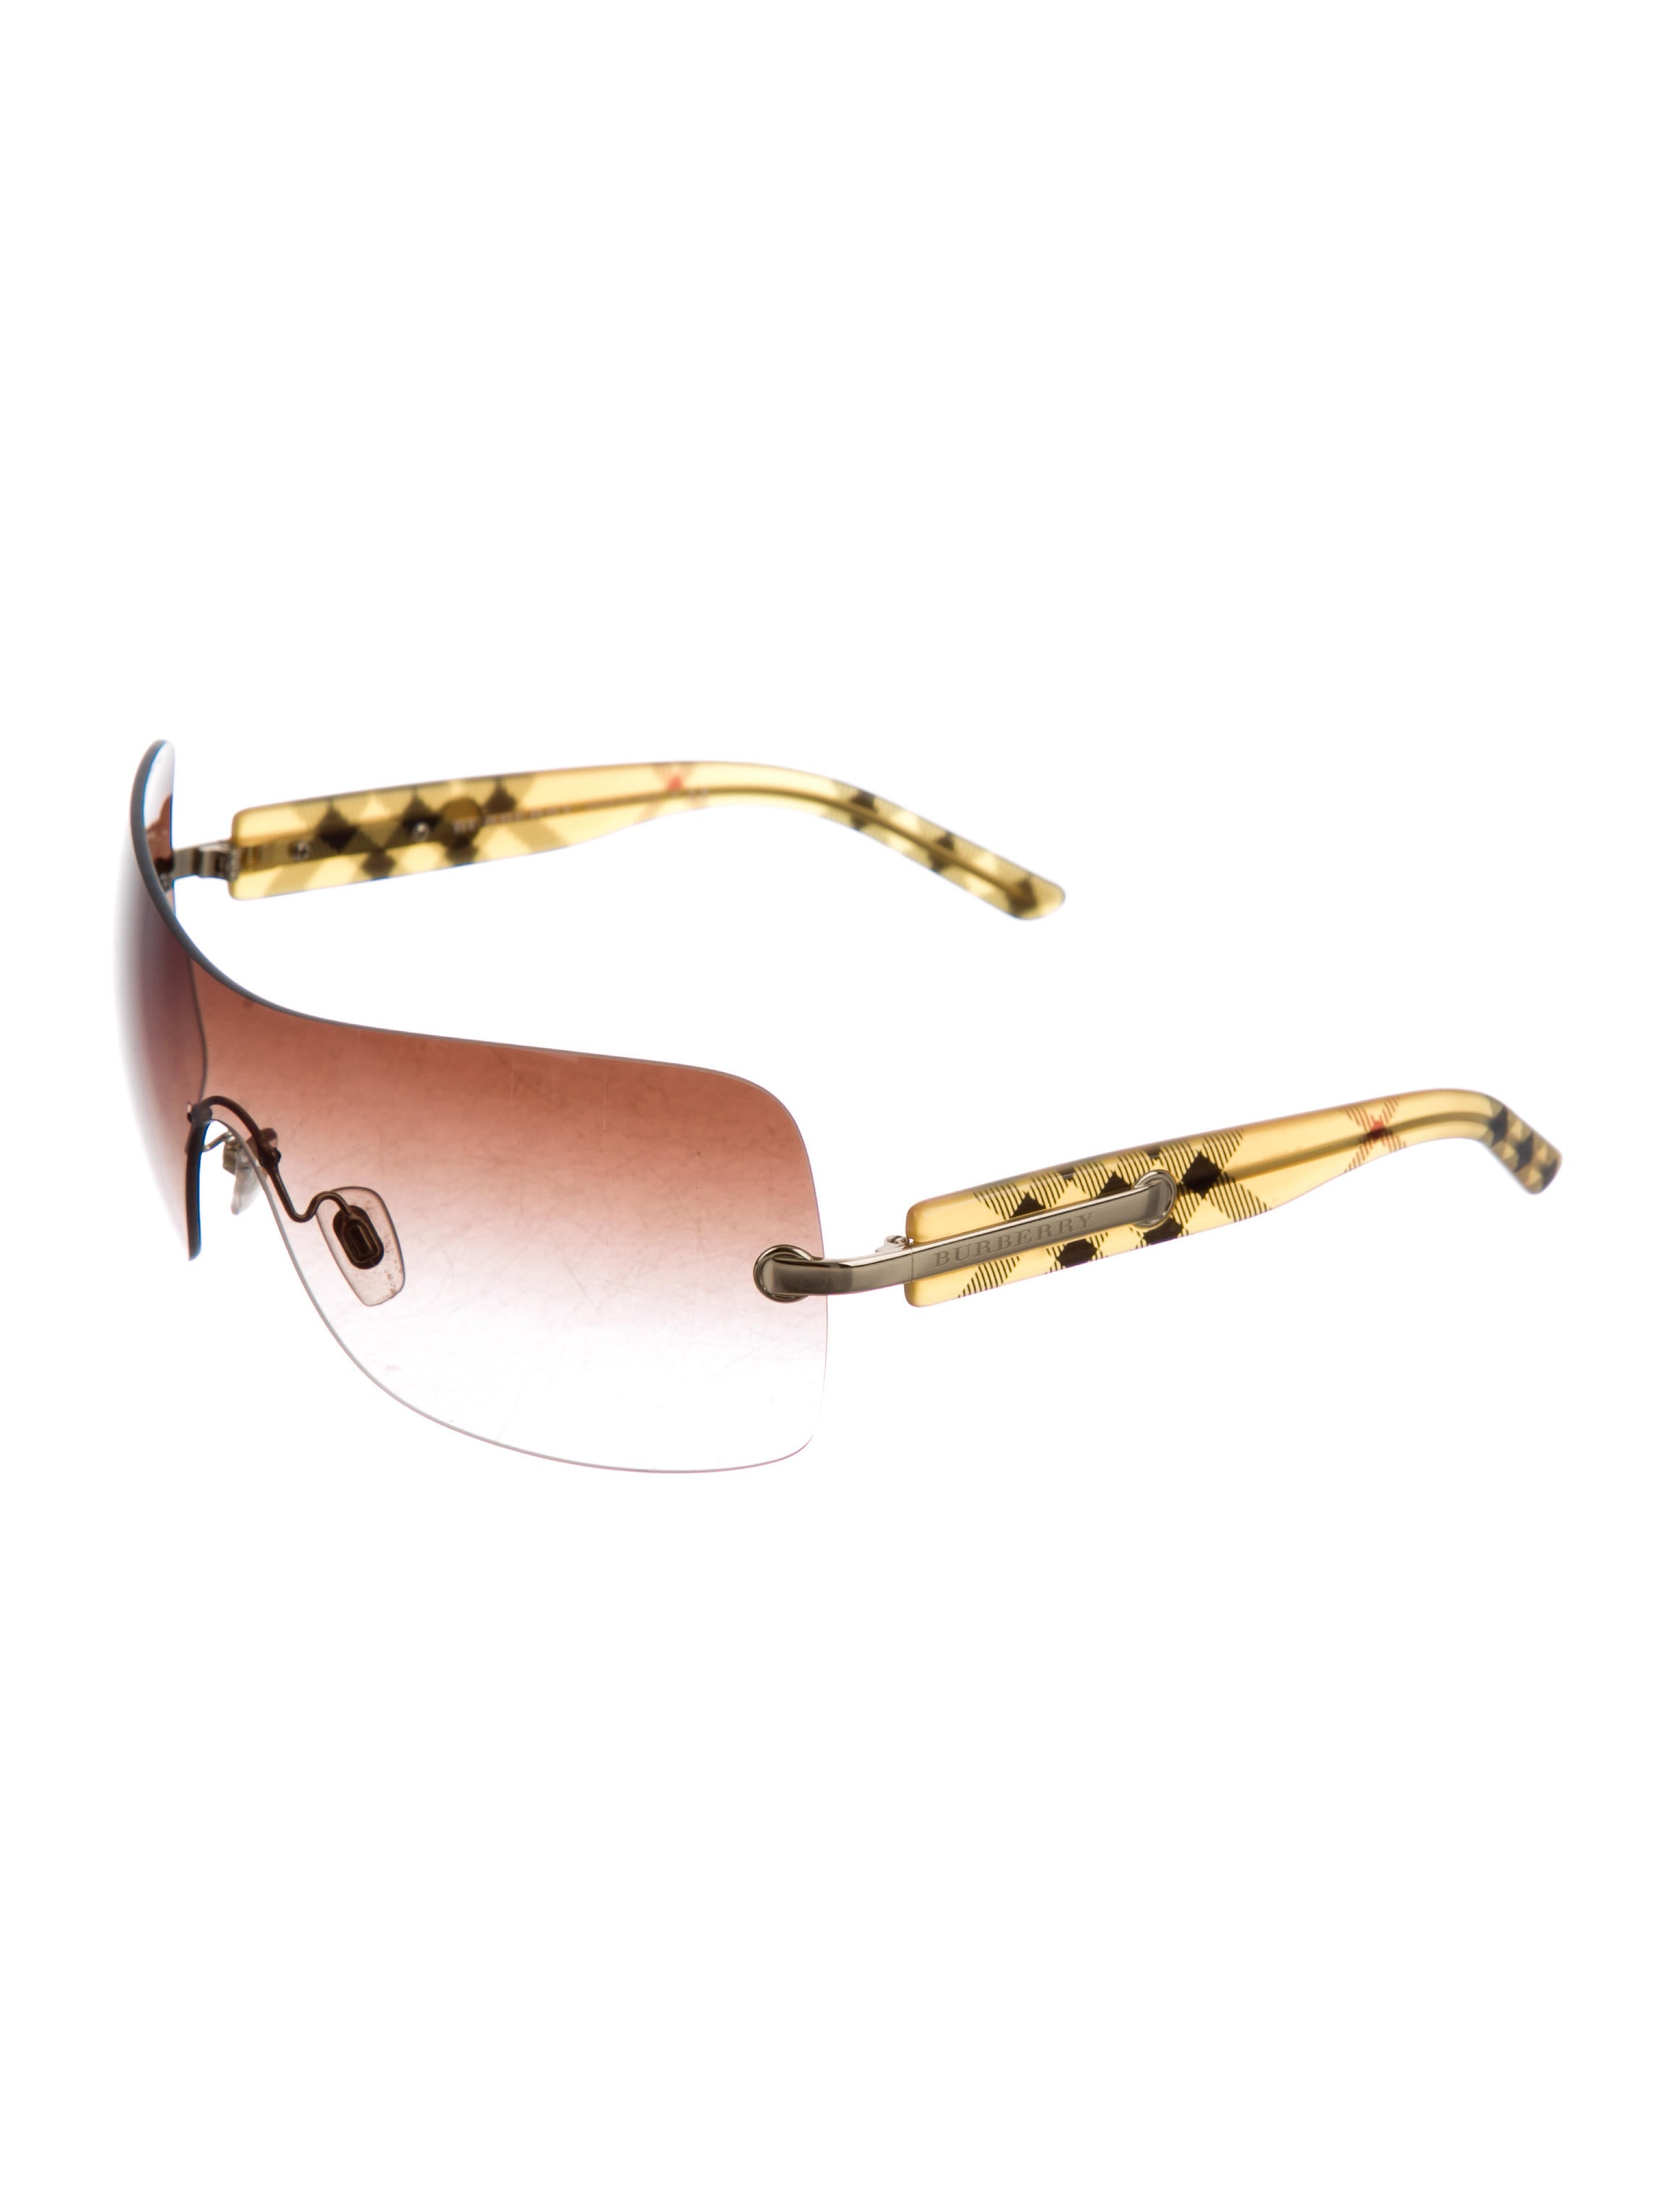 Burberry Rimless Glasses : Burberry Rimless Shield Sunglasses - Accessories ...